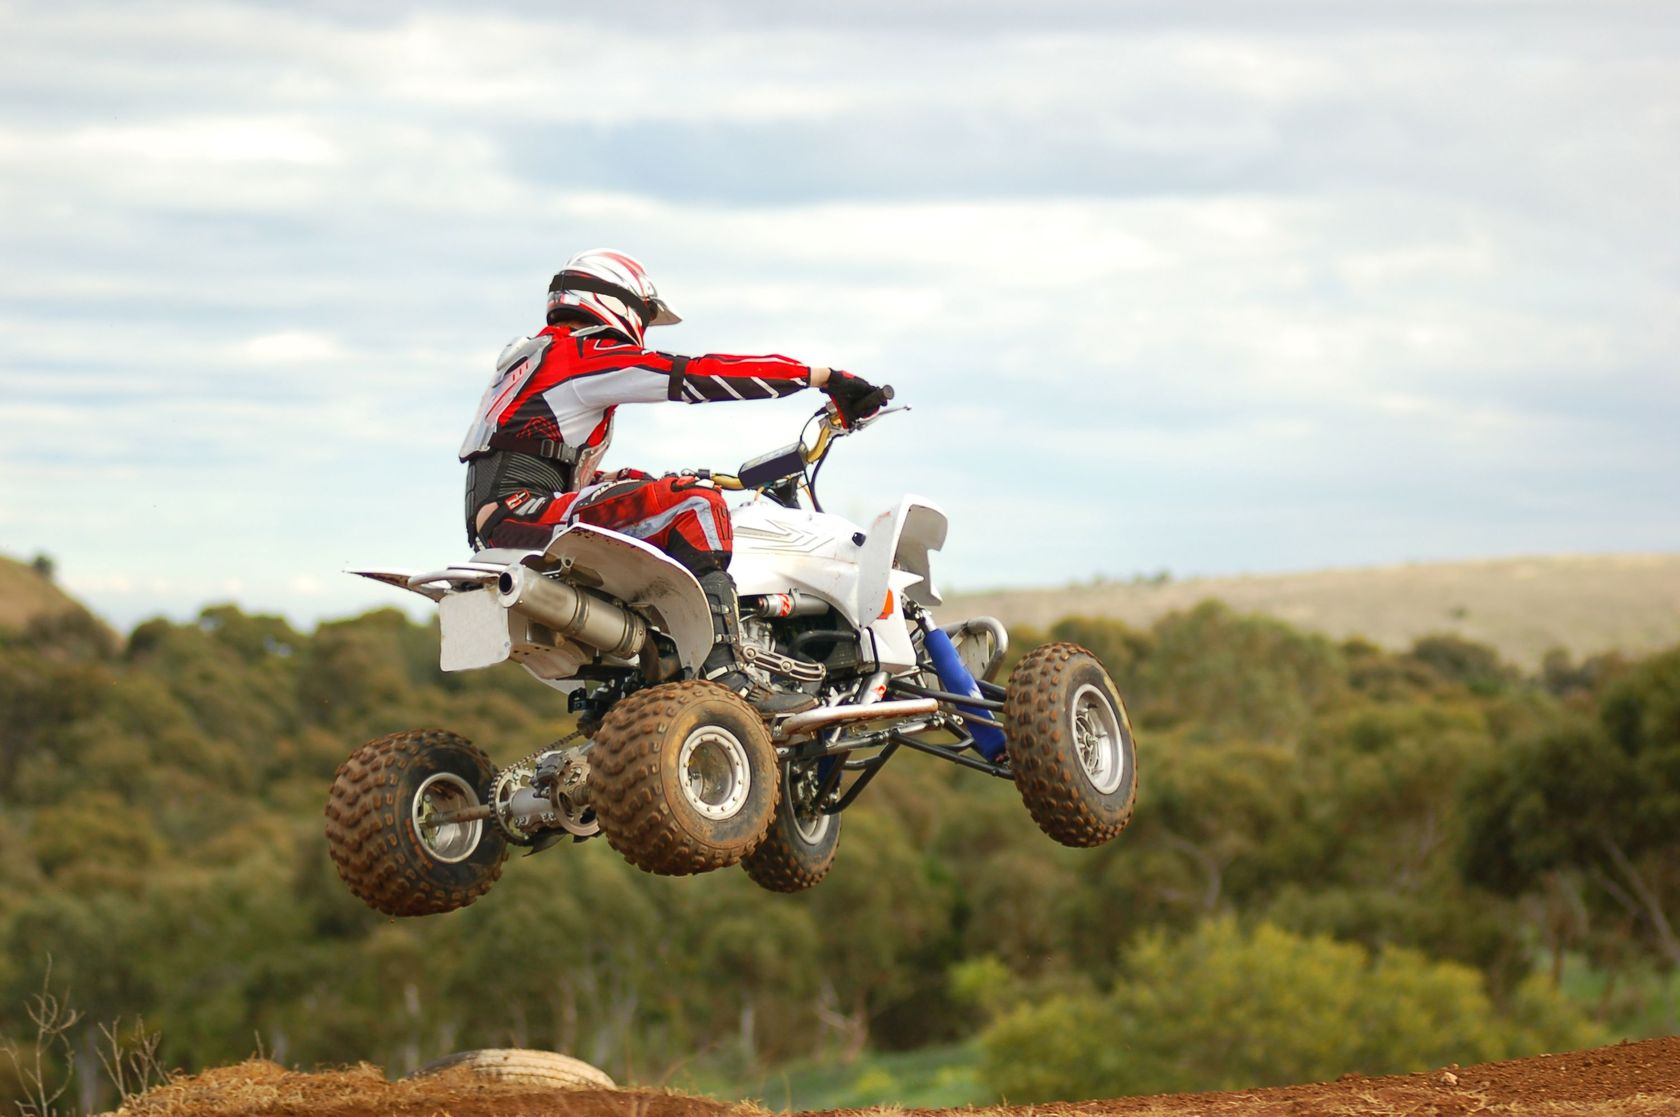 2463793 - quad bike racer jumping into corner away from camera